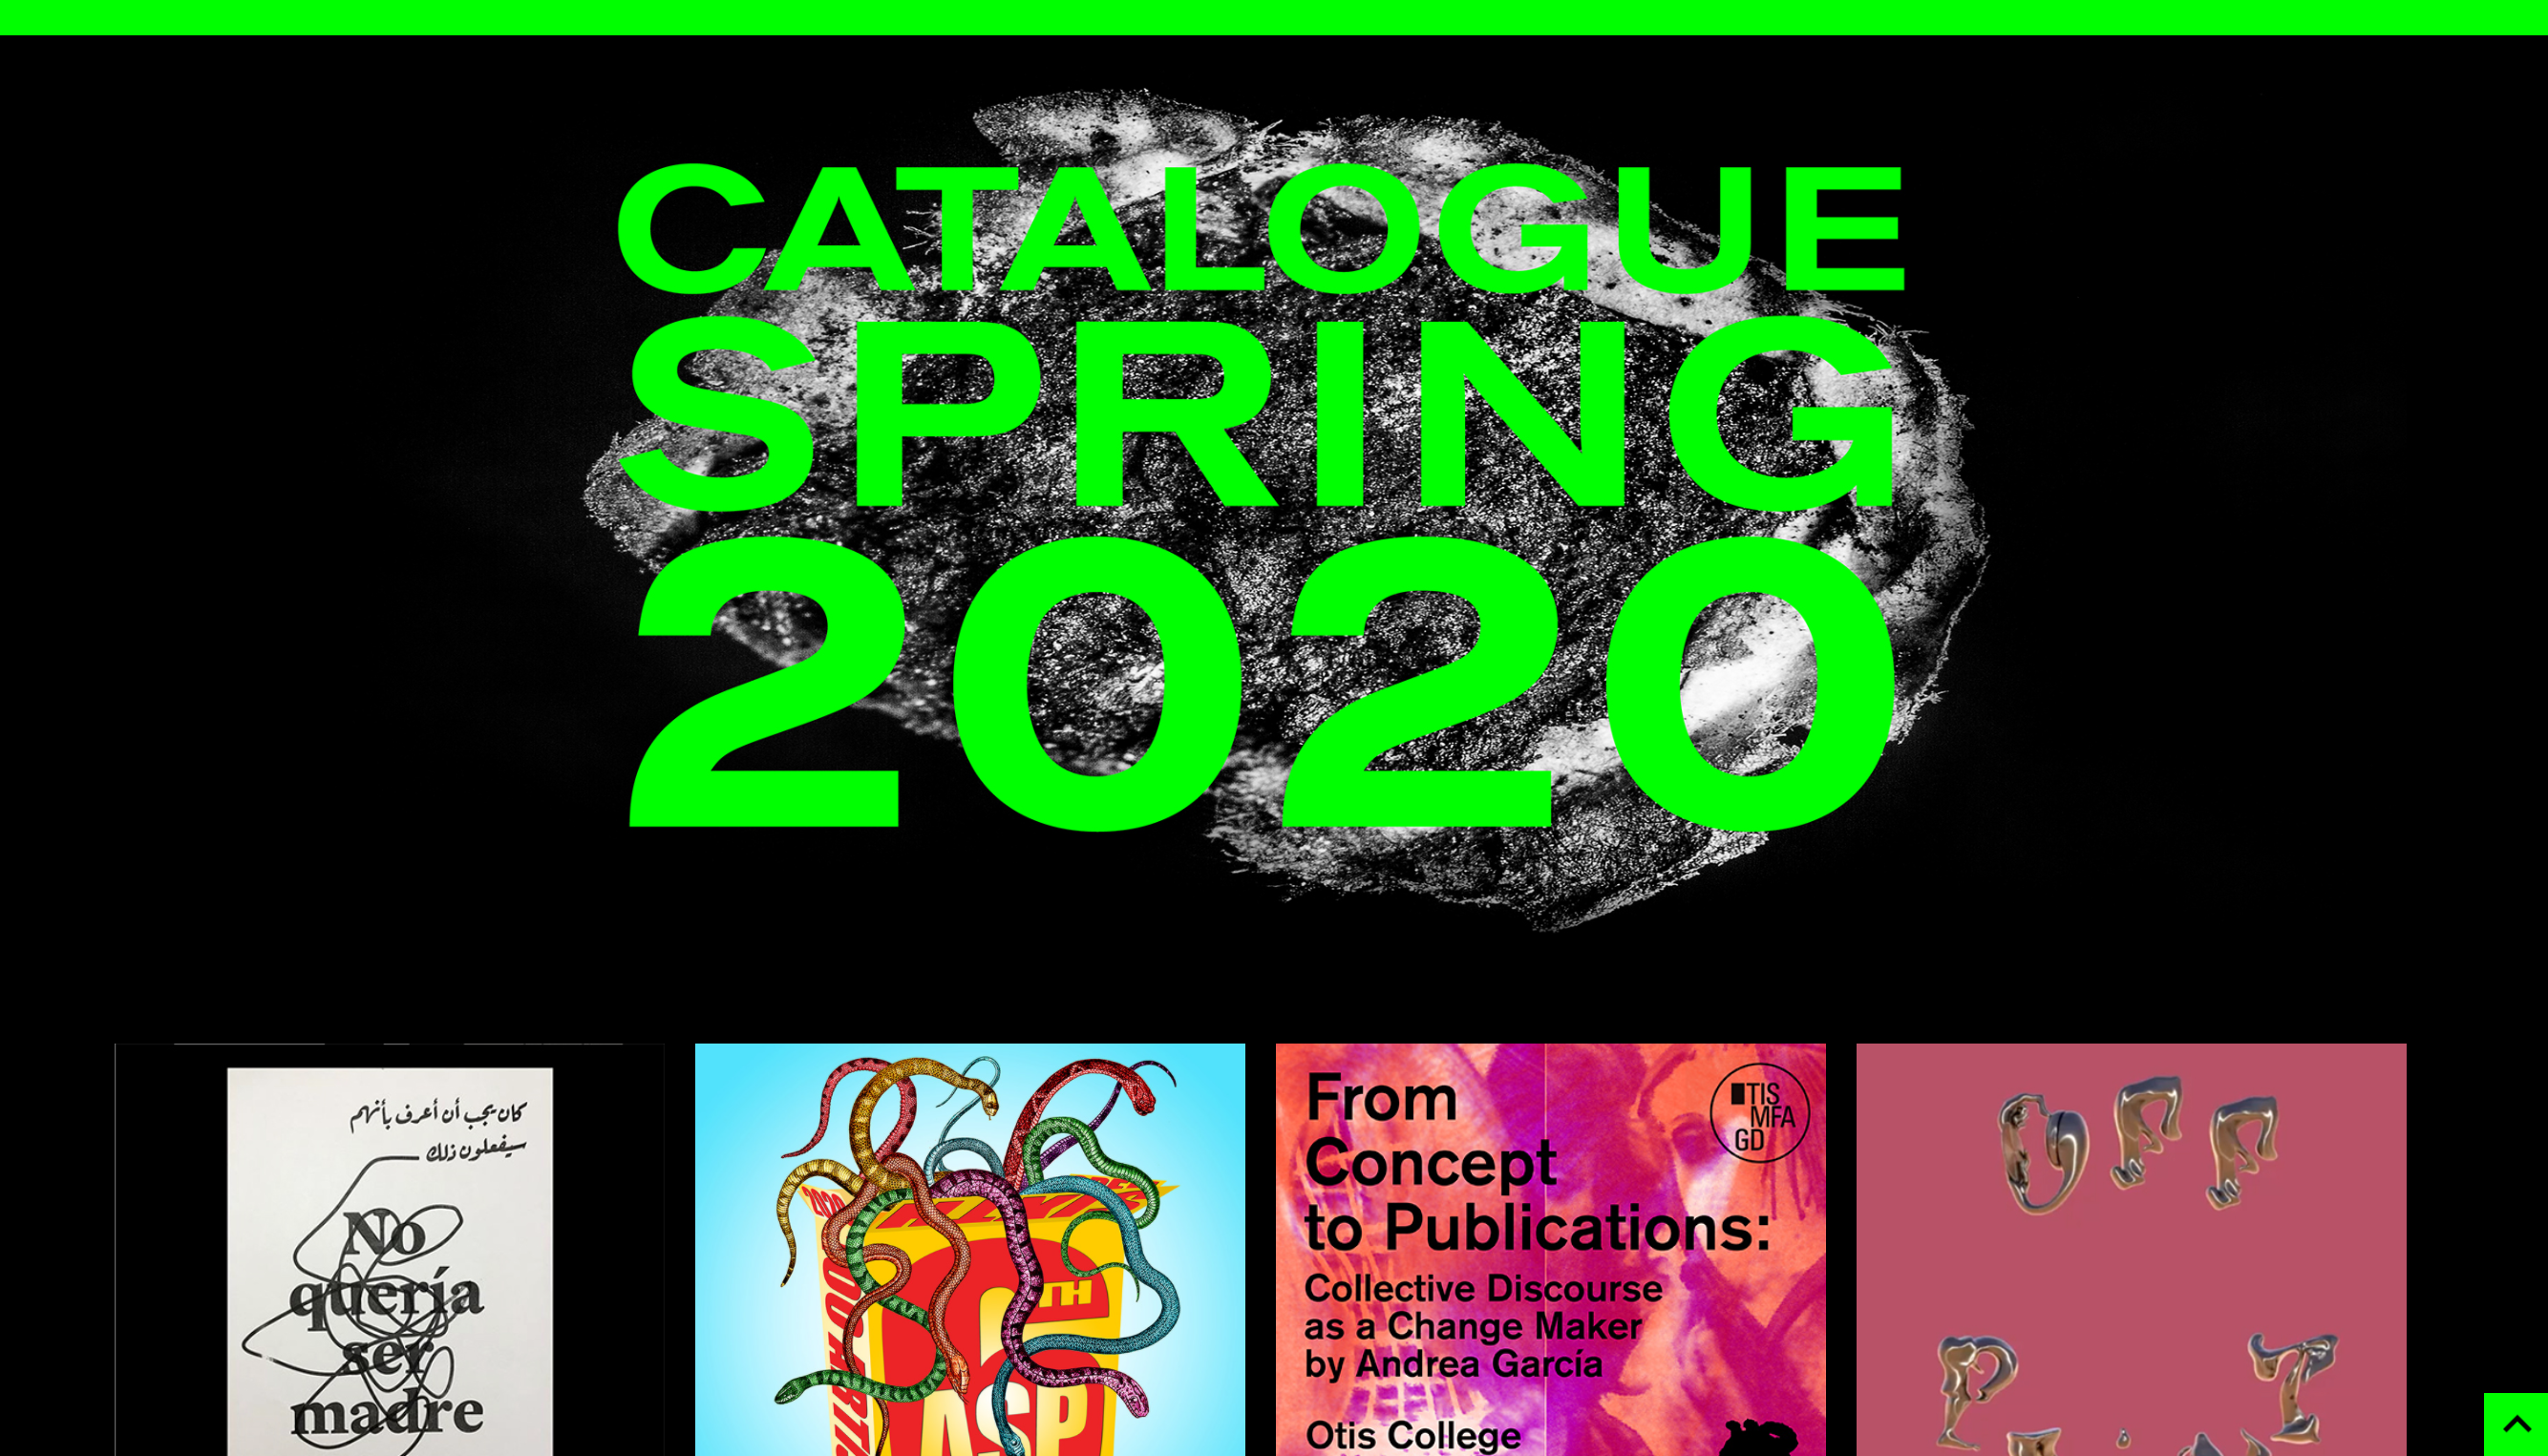 screenshot of their website showing the beginning of their catalog for 2020